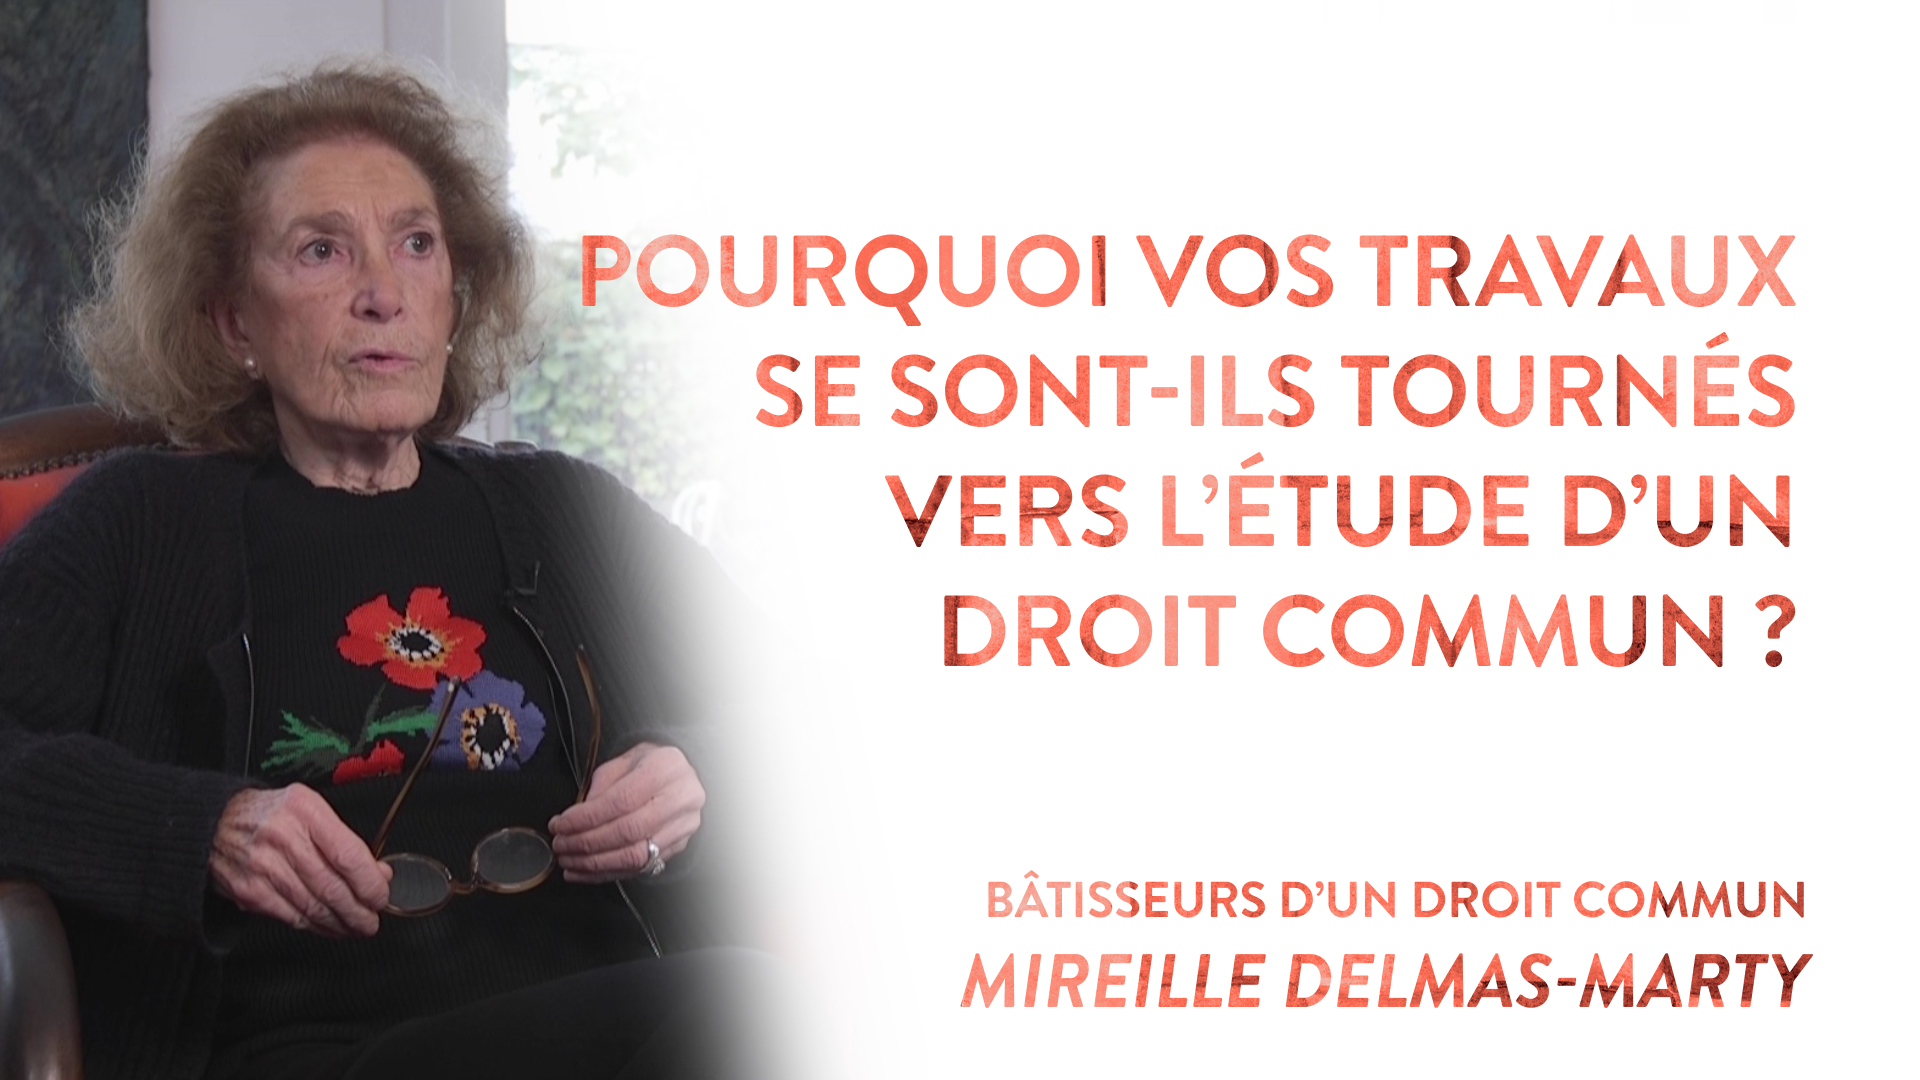 Mireille Delmas-Marty question 2